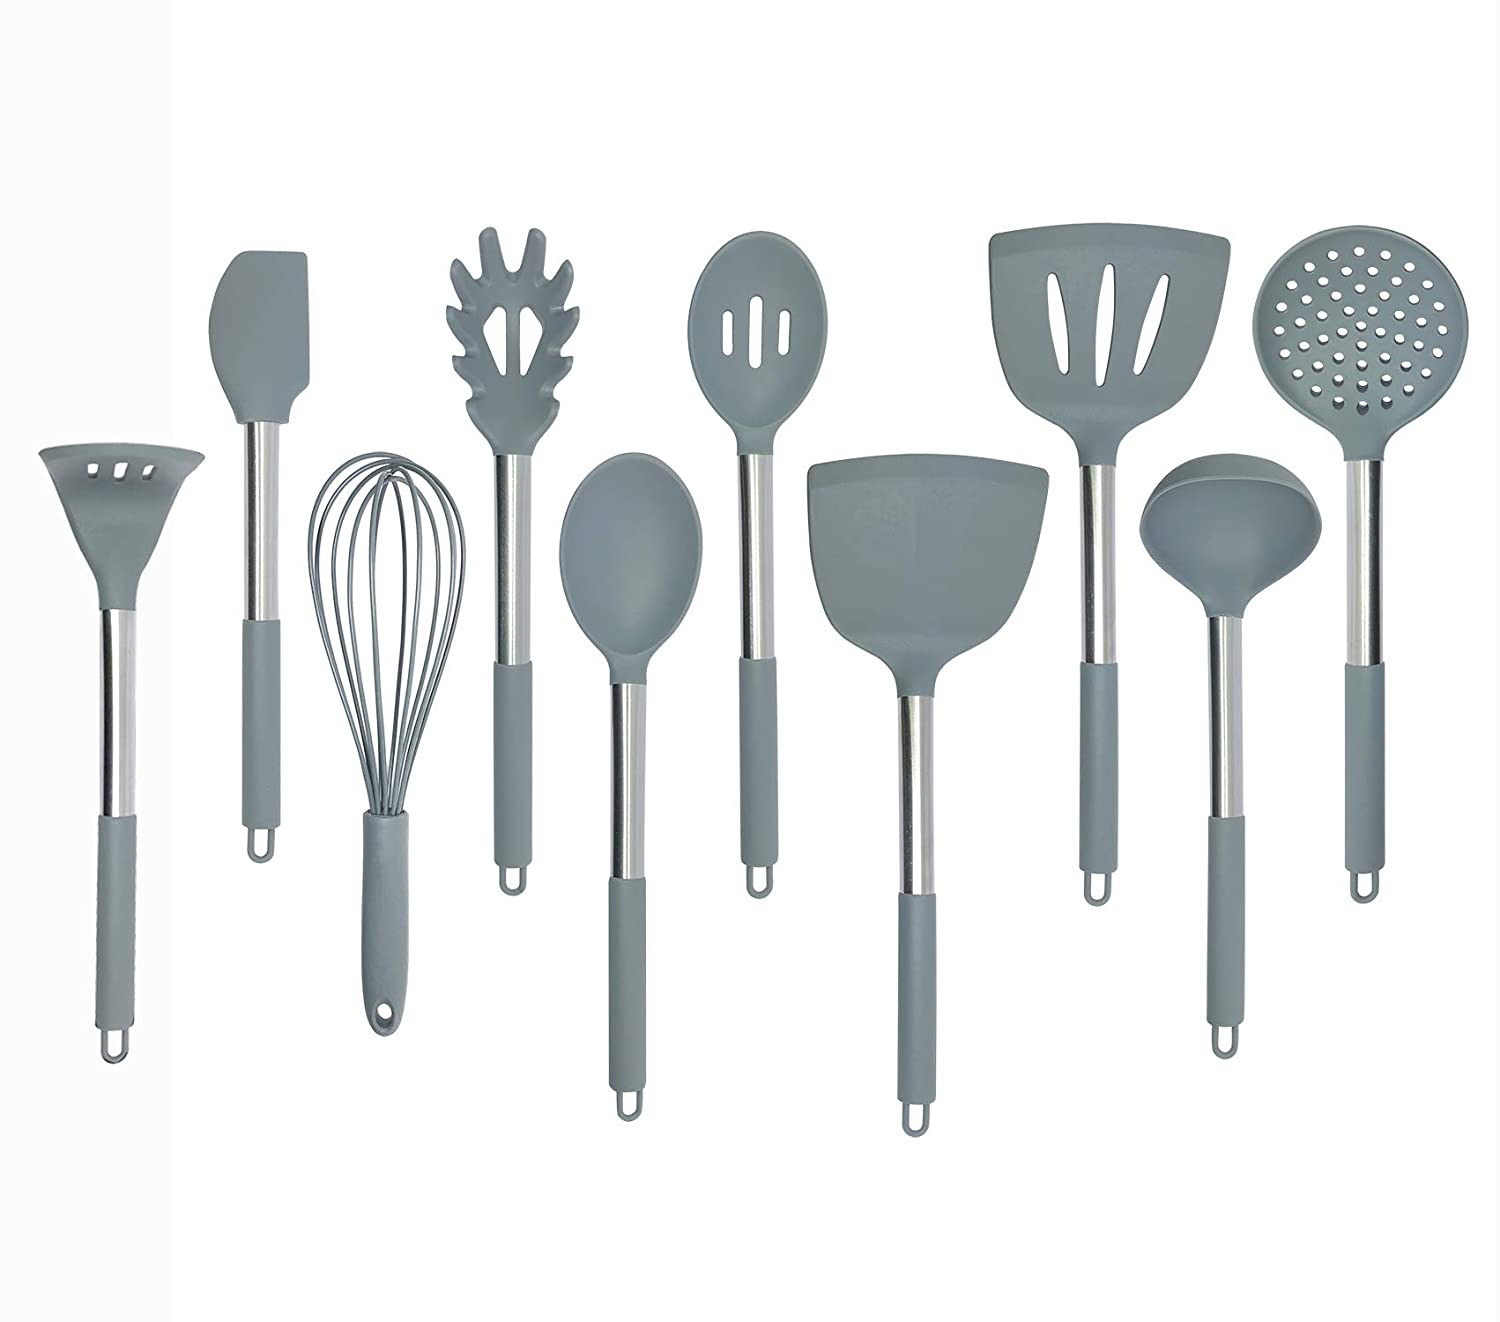 Kitchen Silicone Utensil Set Nylon Core and Stainless Steel Handle Coat with Silicone for Non Stick Cookware Baking Cooking Utensil Tools Set of 10 Grey ZAHUODIAN